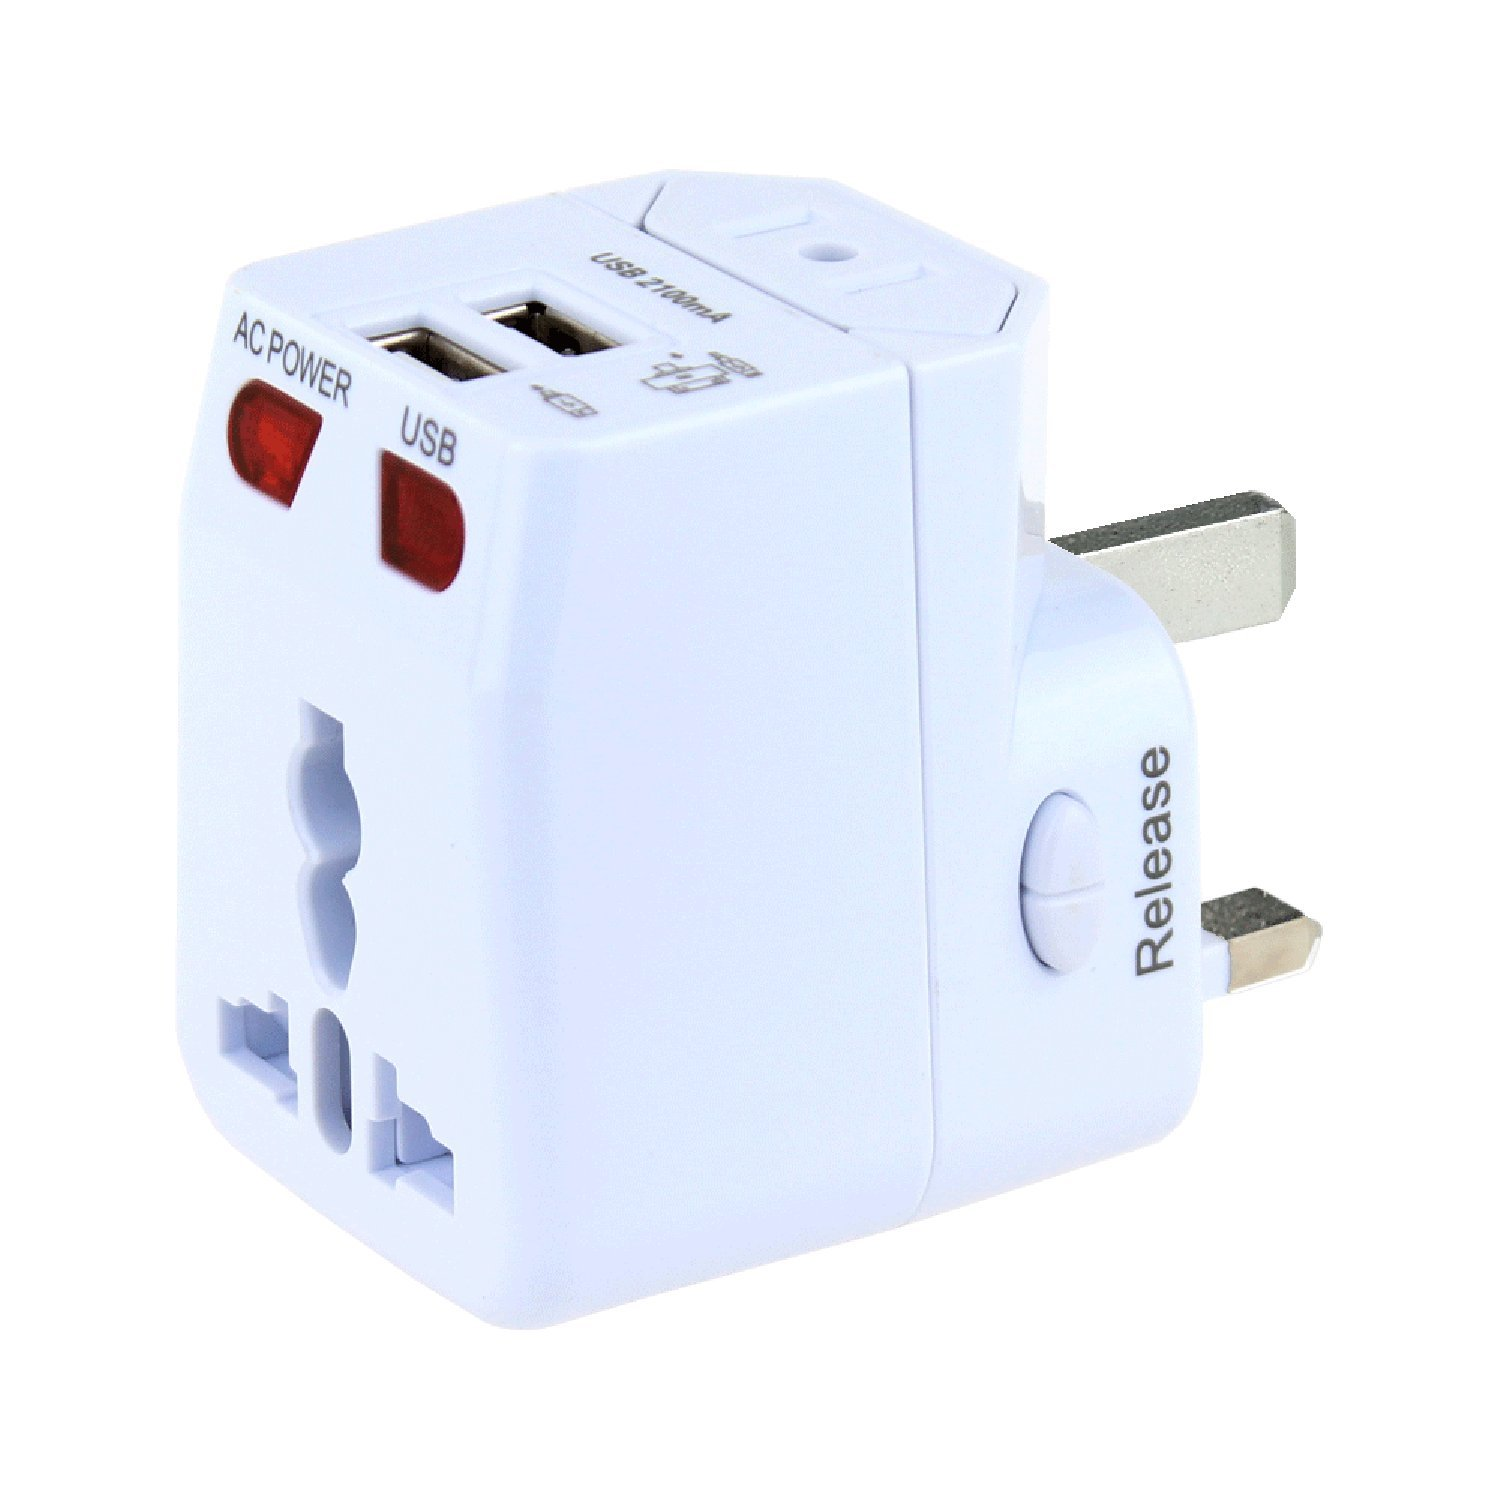 Universal Travel Adapter, Wonplug World Power Adapter Plug with 2.1A Dual USB, International Adapter Converters for Europe,Italy, Ireland,UK, AU,Asia,Over 200 Countries, Built-in Safety Fuse